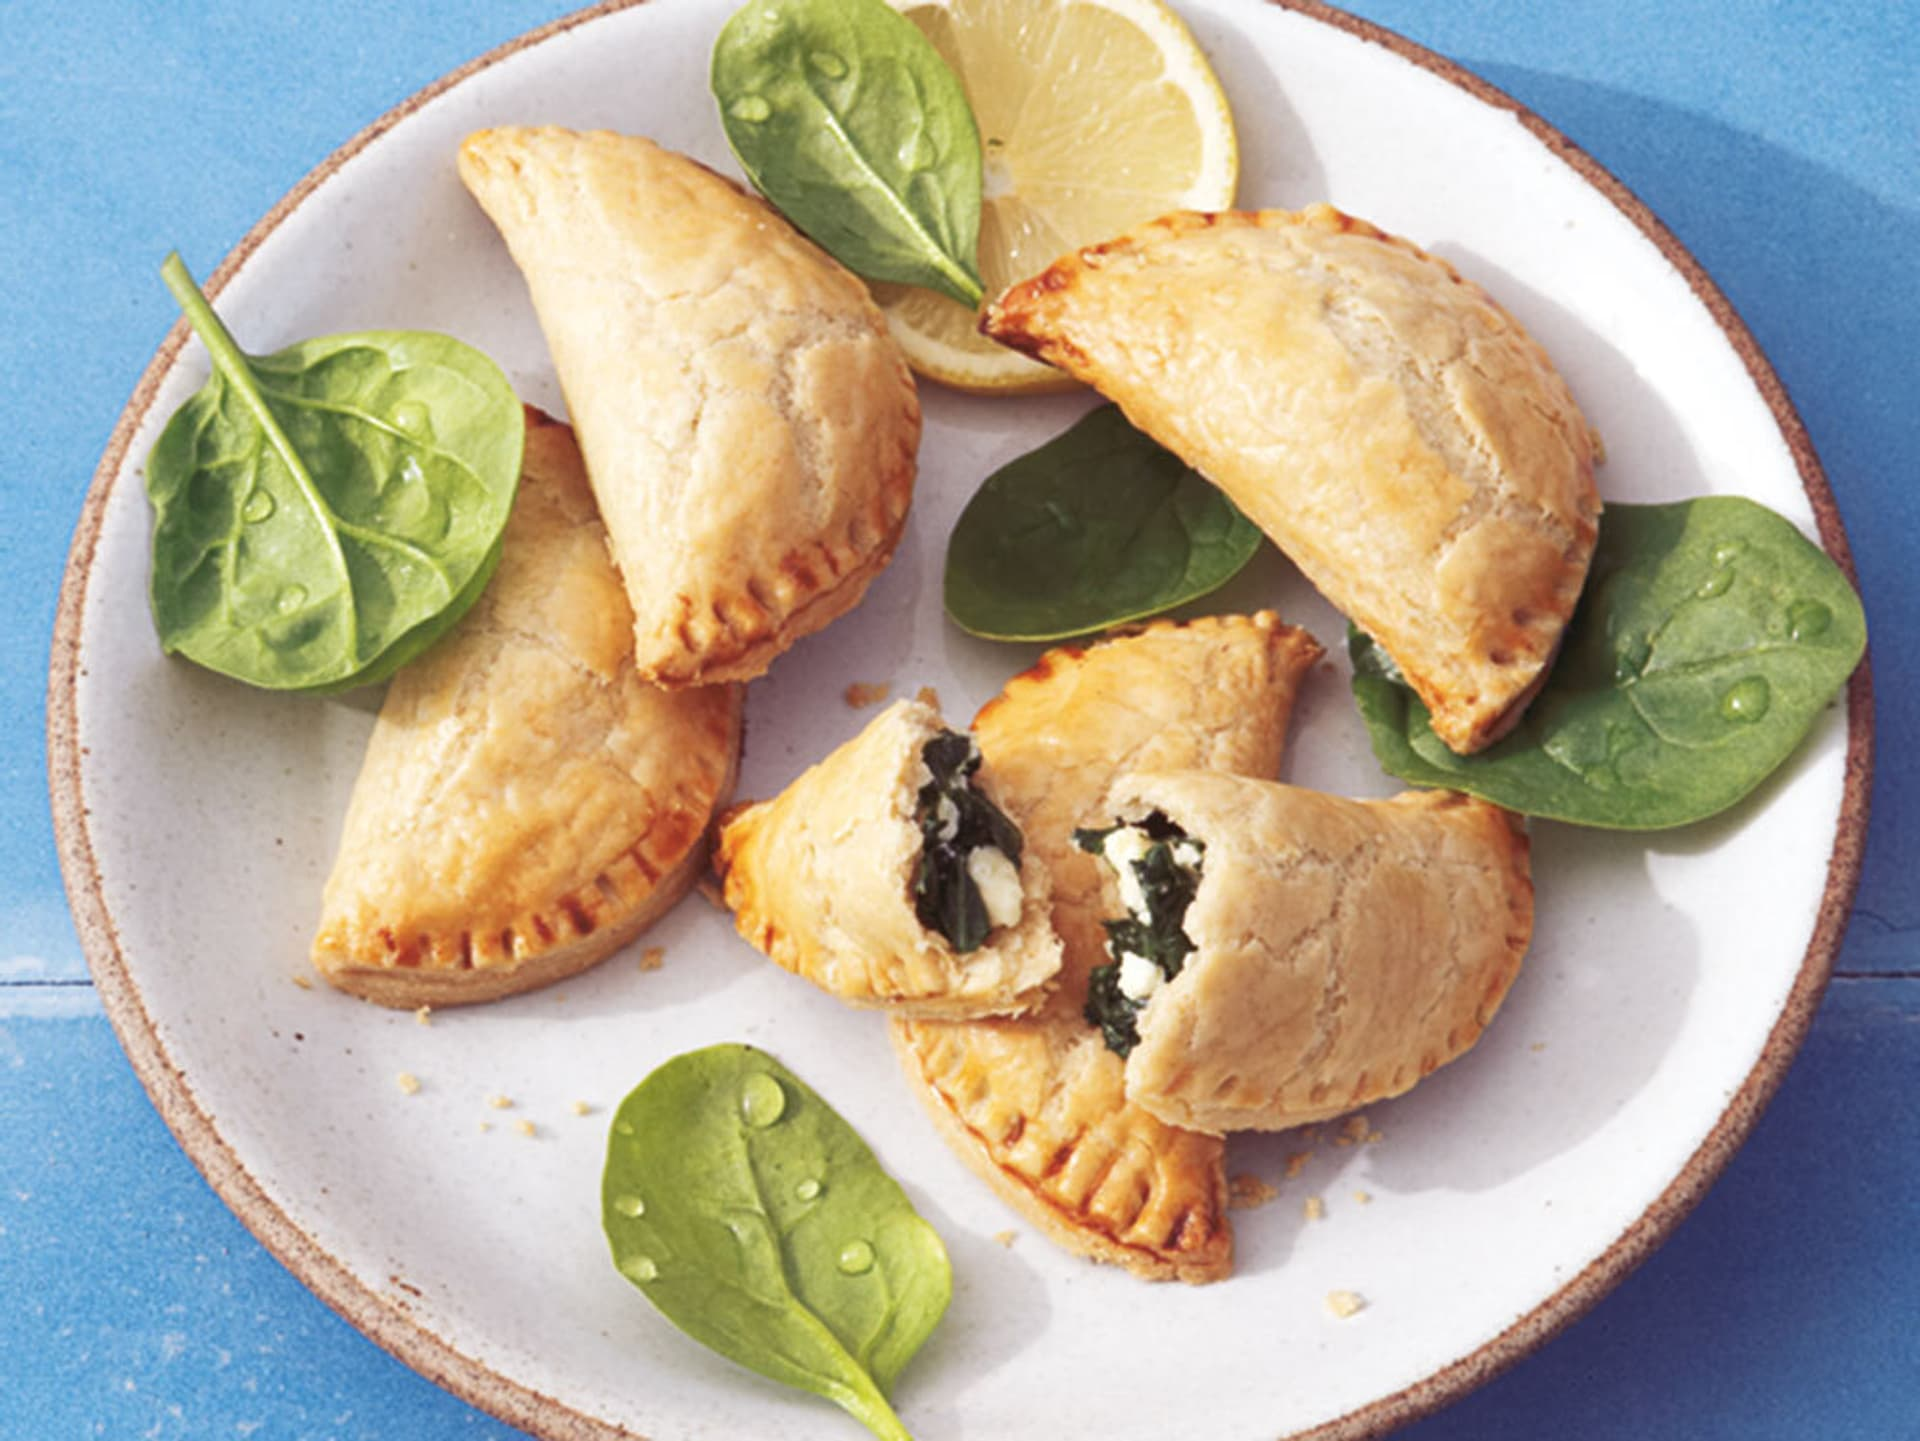 Spinat empanadillas